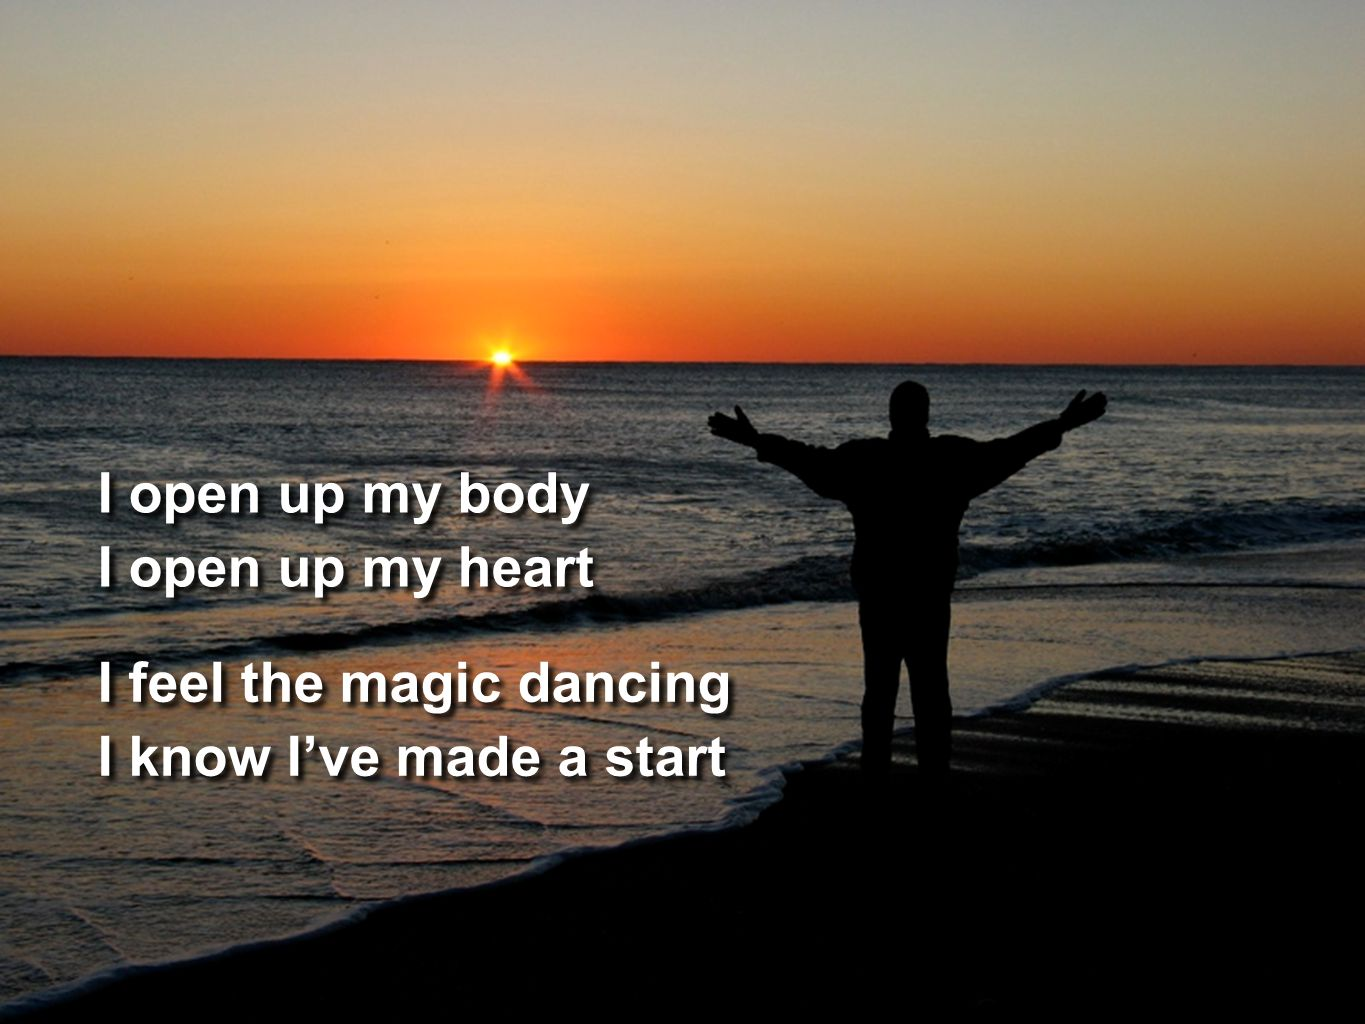 I open up my body I open up my heart I open up my body I open up my heart I feel the magic dancing I know I've made a start I feel the magic dancing I know I've made a start